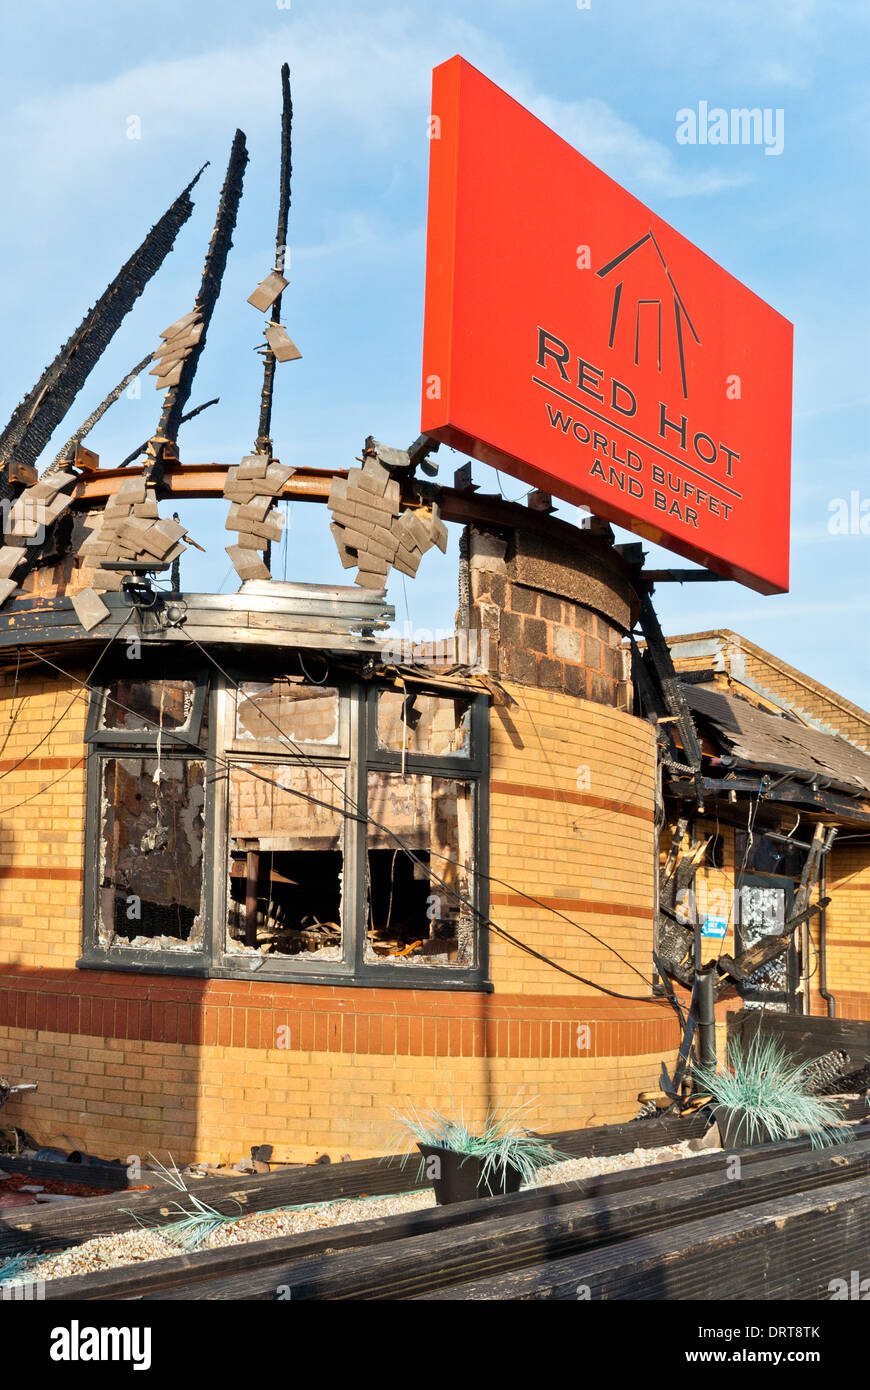 Red Hot Buffet Restaurant Northampton gutted by fire late 2013 - Stock Image